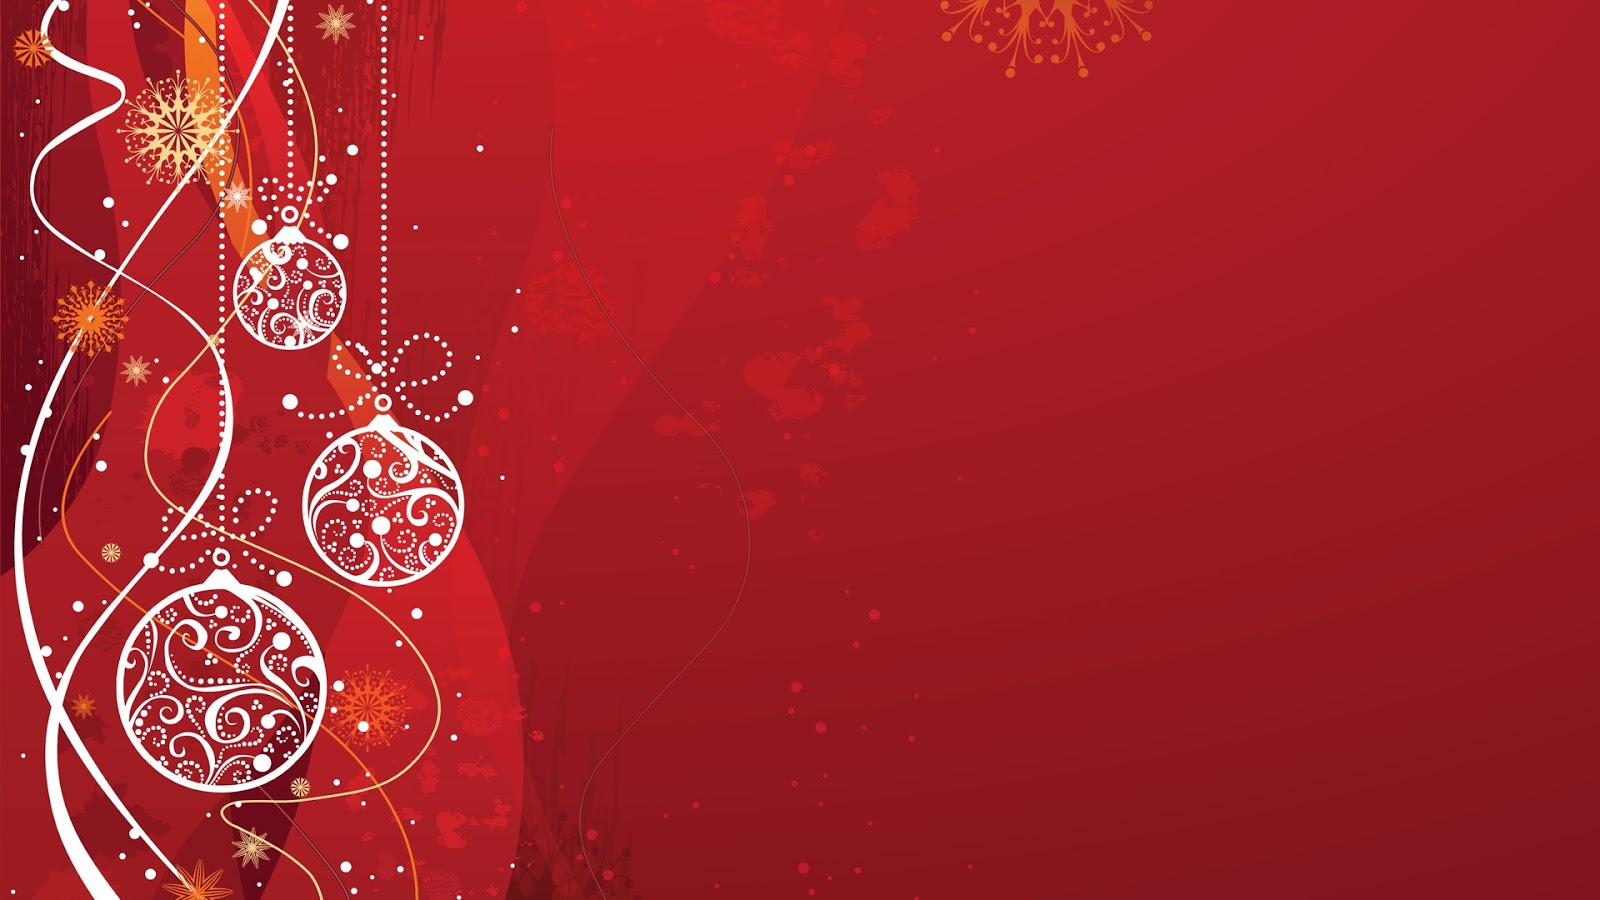 high definition wallpapers 1920x1080 christmas - photo #19